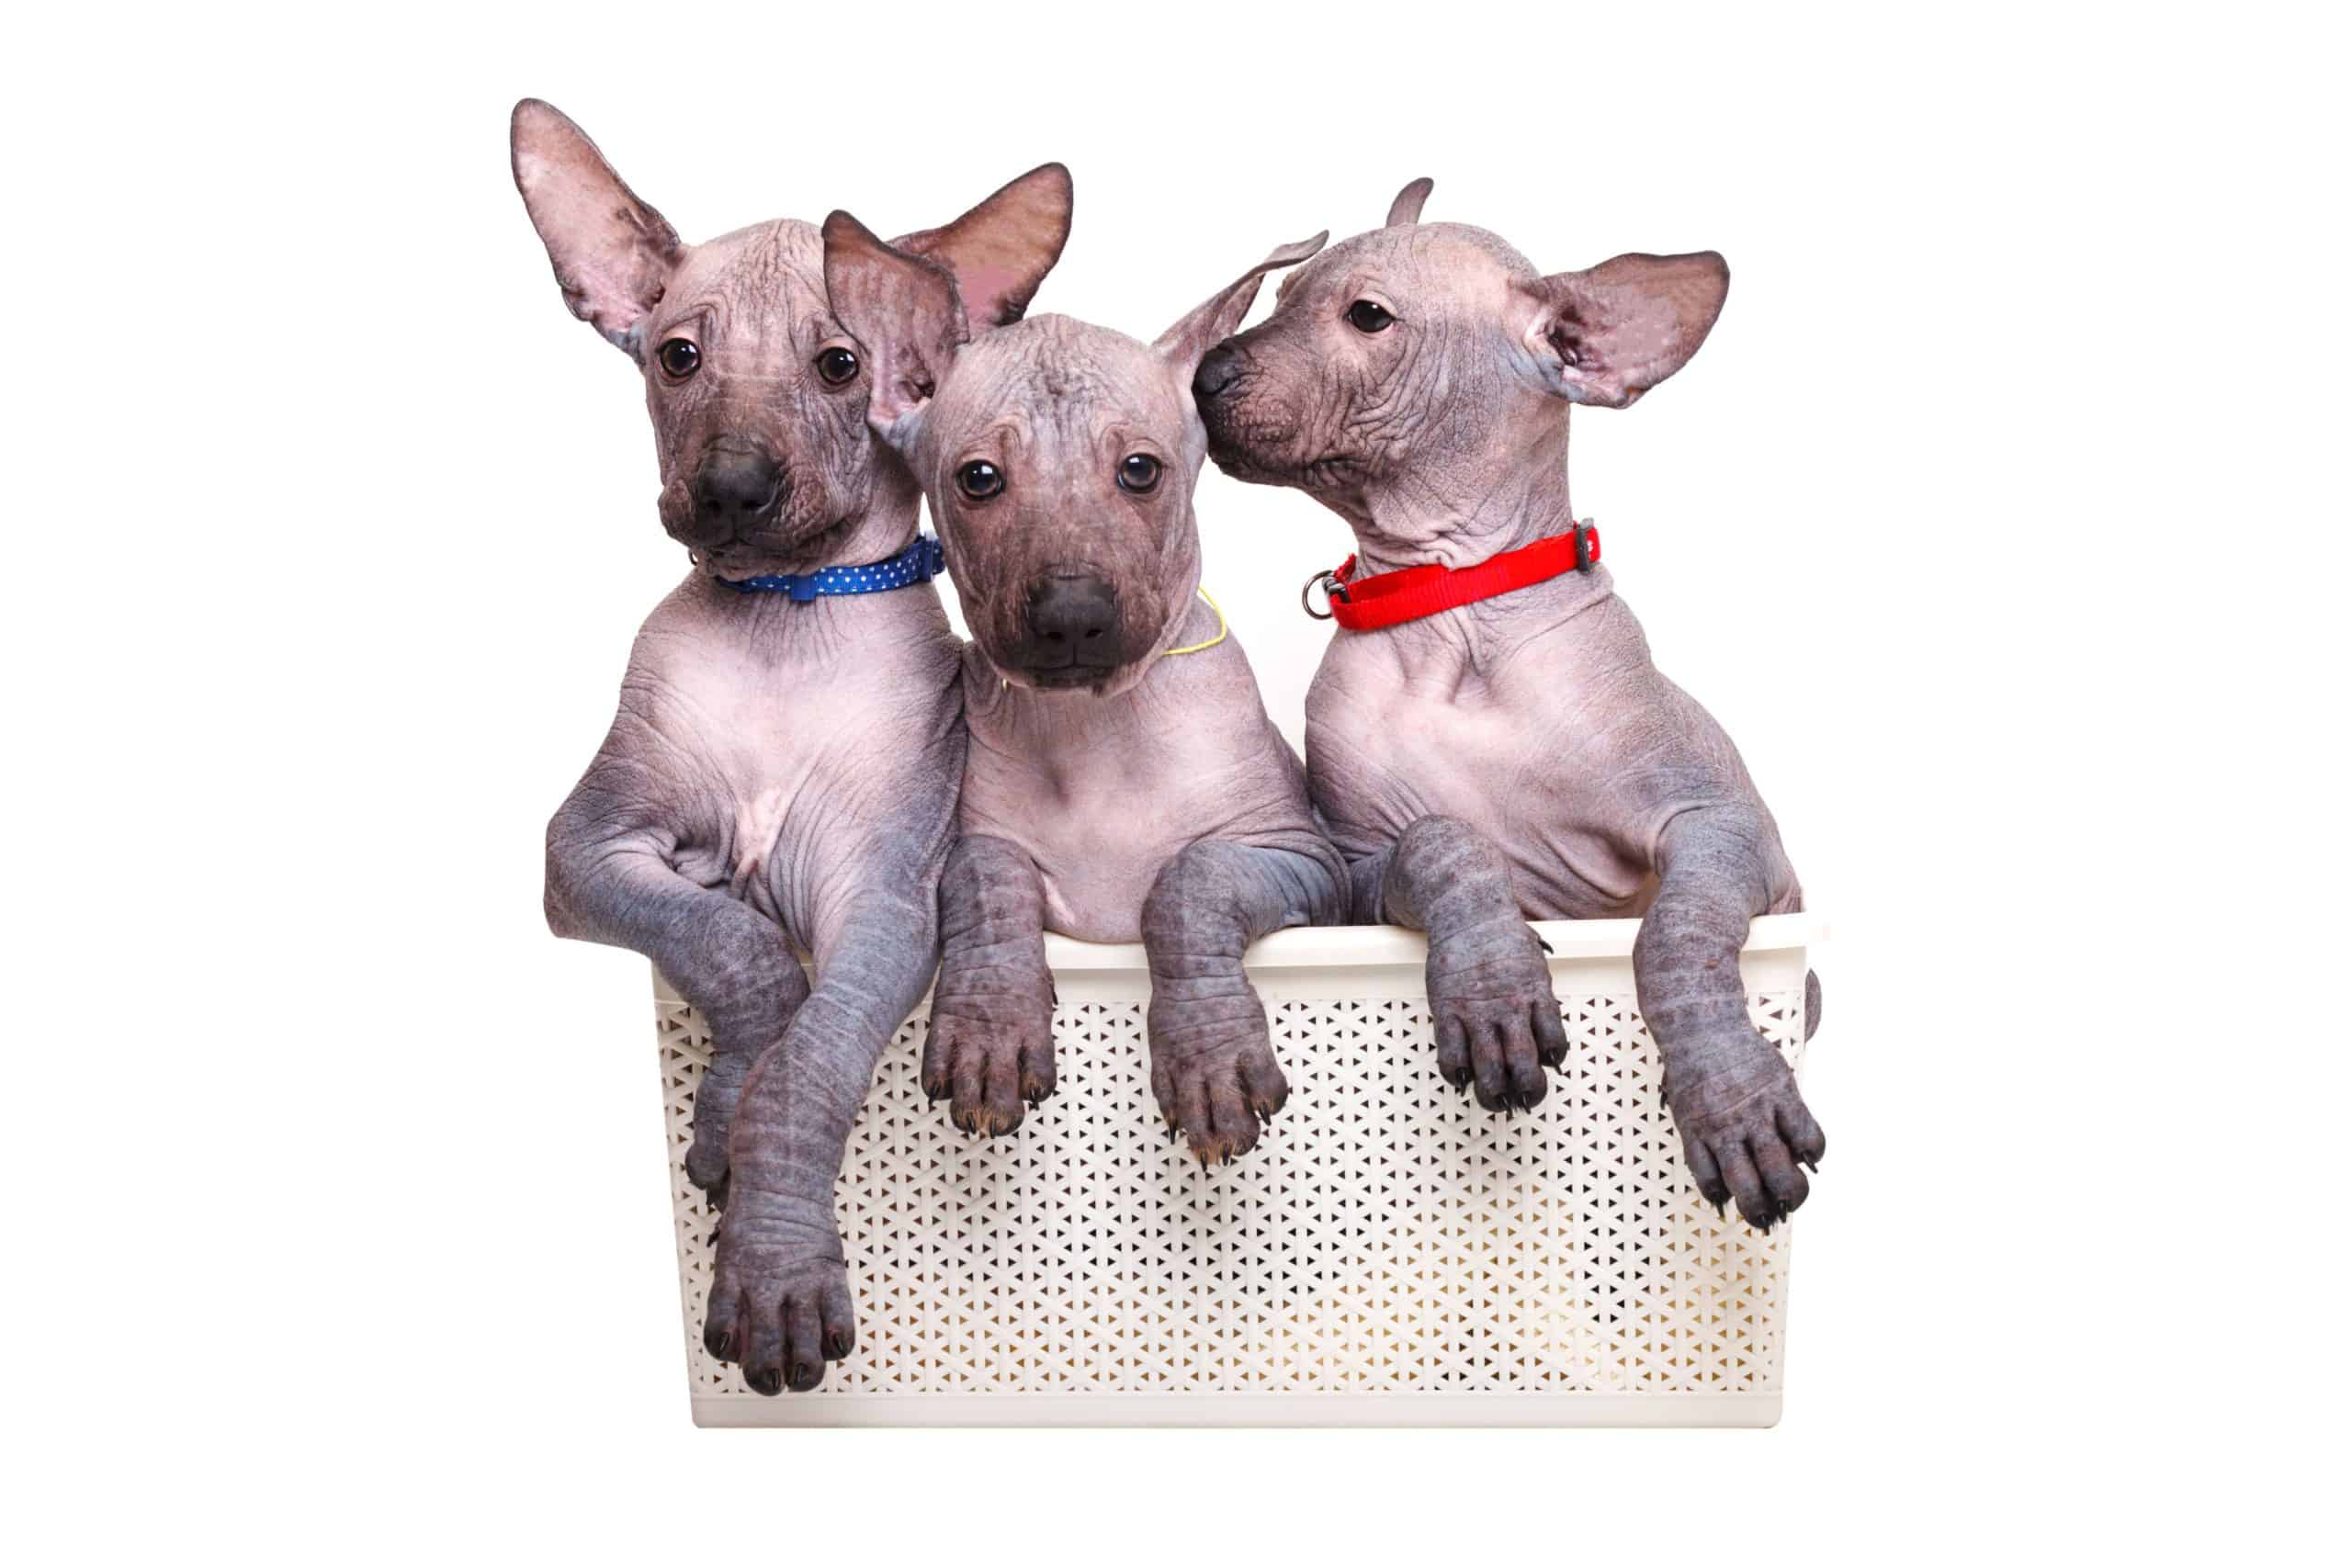 Xoloitzcuintli are considered hairless dogs and are hypoallergenic.